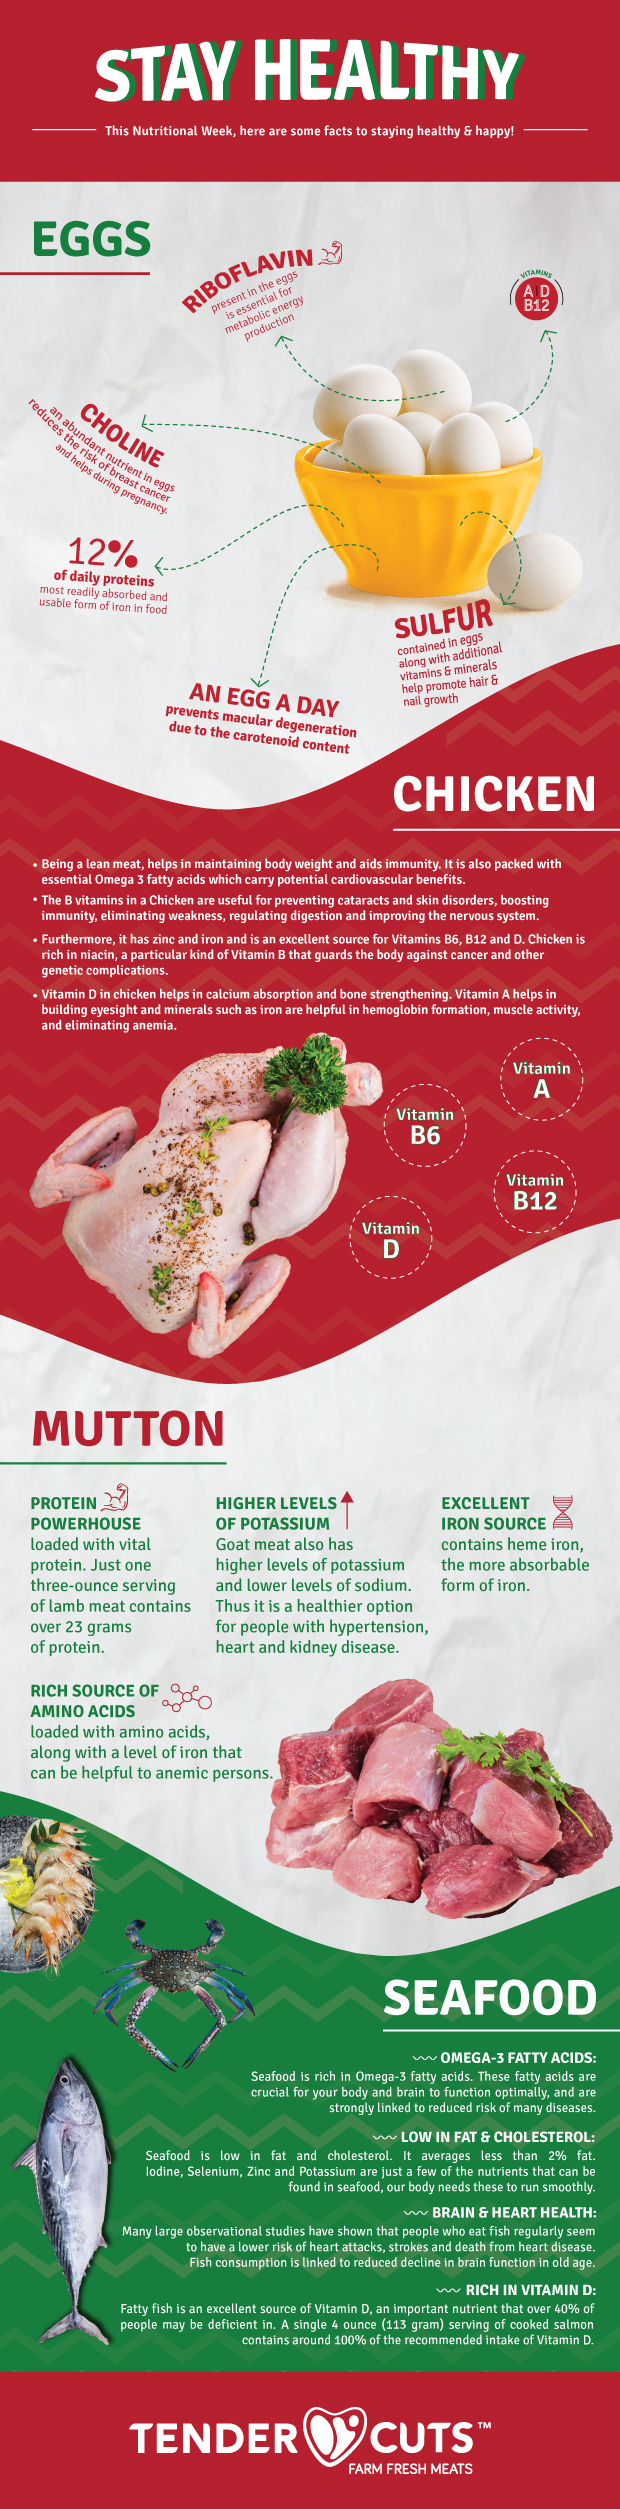 benefits-of-meat-&-seafood (1)